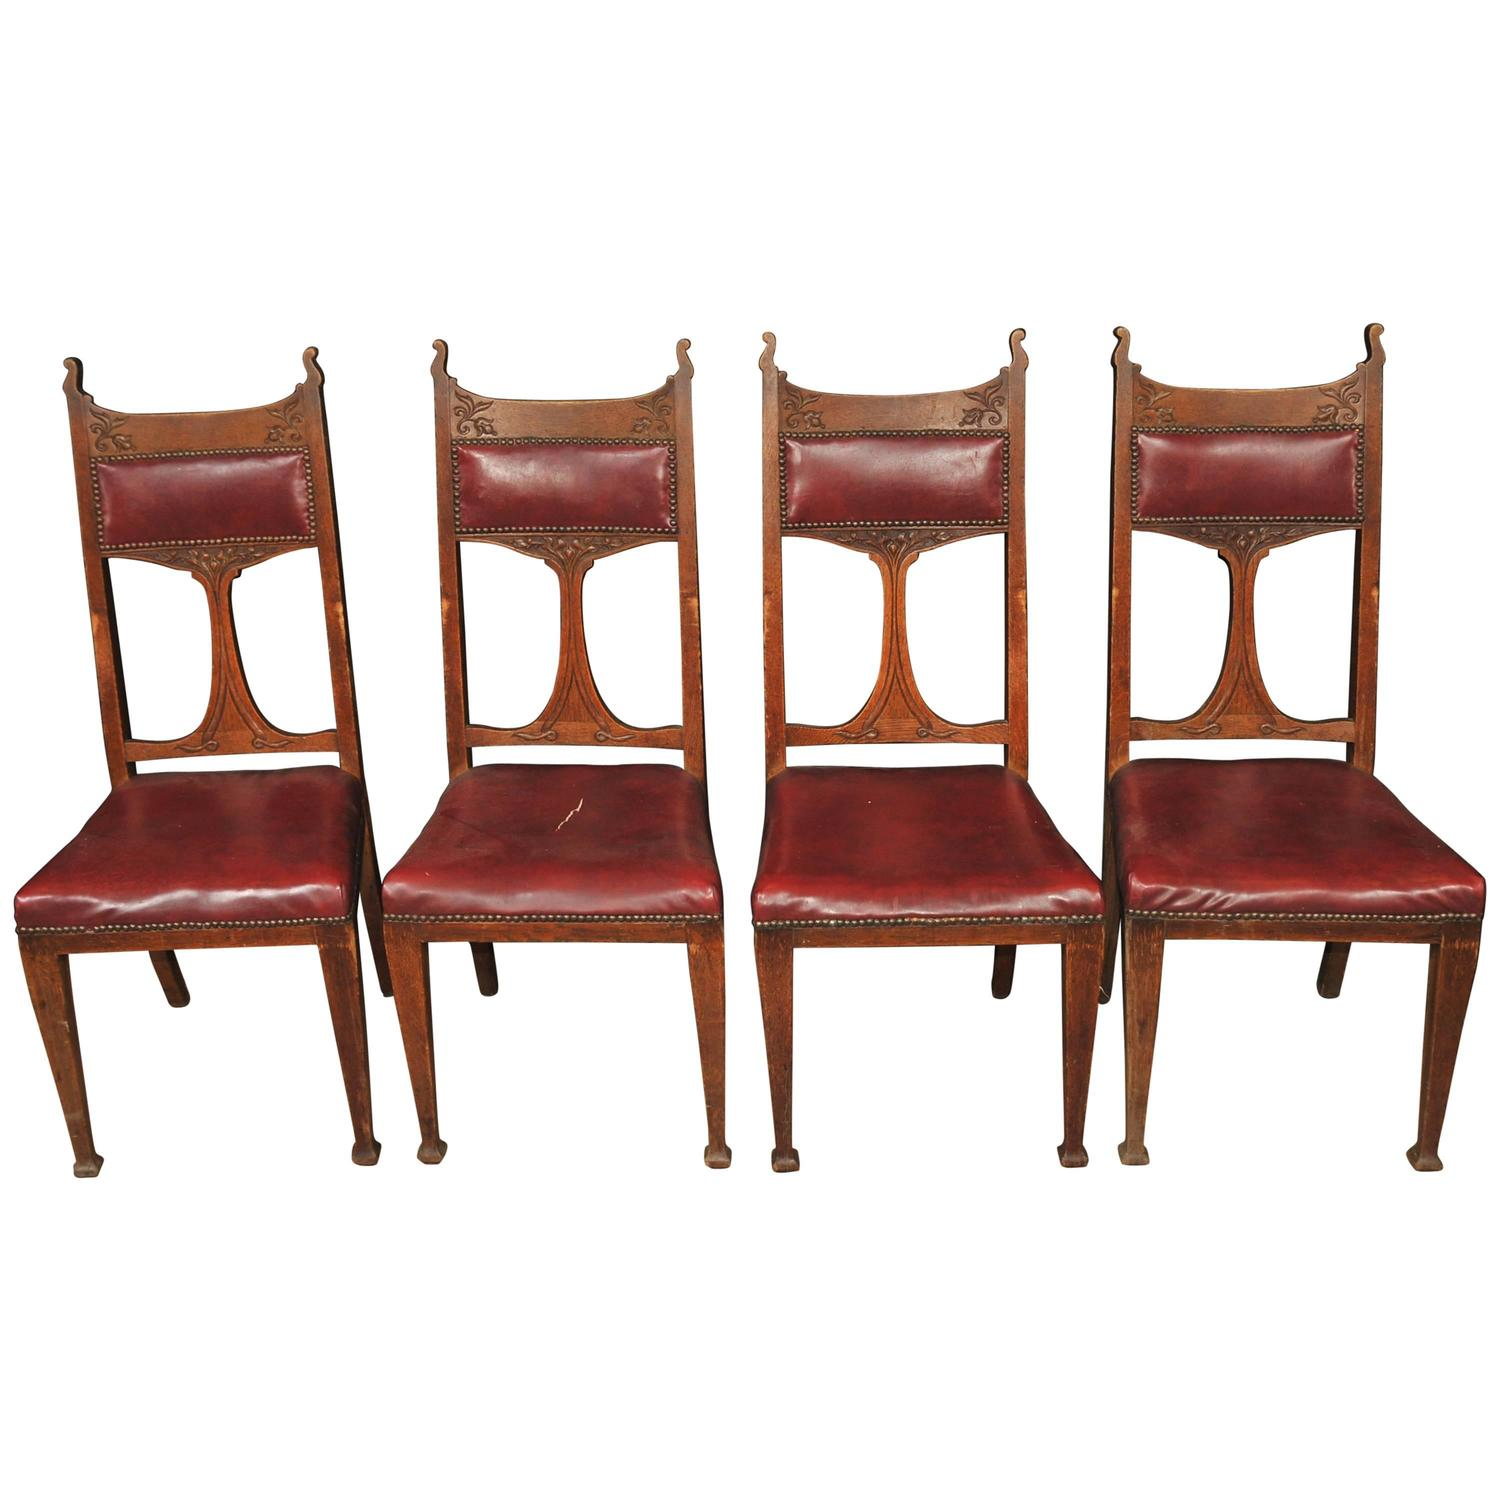 advanced church chairs swing chair penang set four antique art nouveau dining 1890 arts and